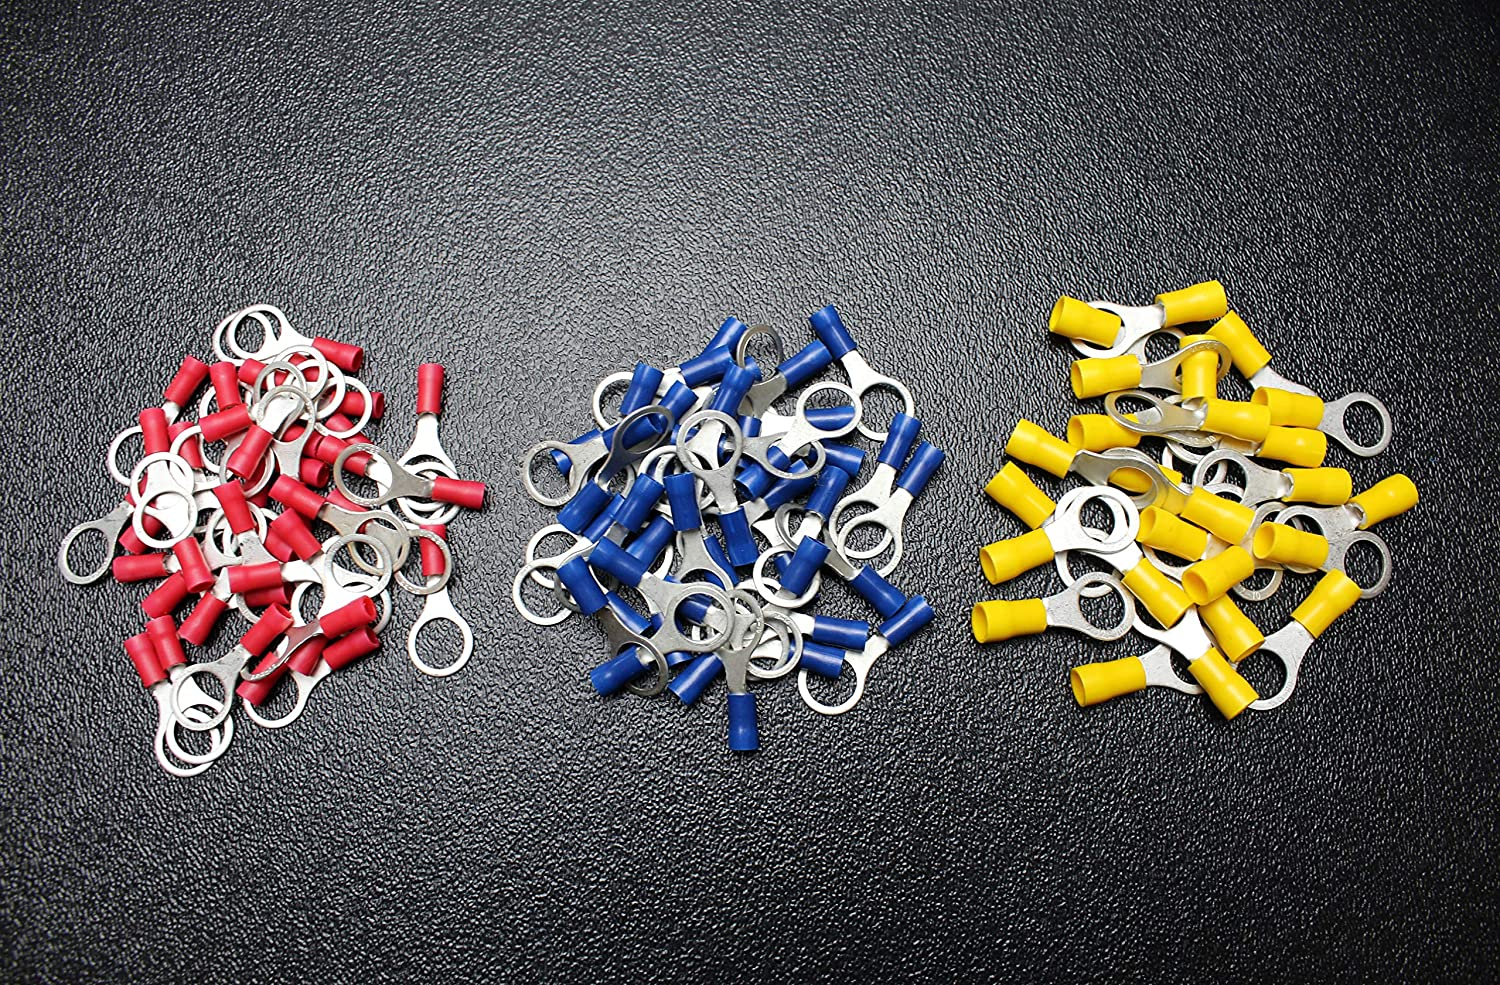 120Pcs T-Tap Male Spade Insulated Wire 10-12 14-16 18-22GA Connectors Terminals